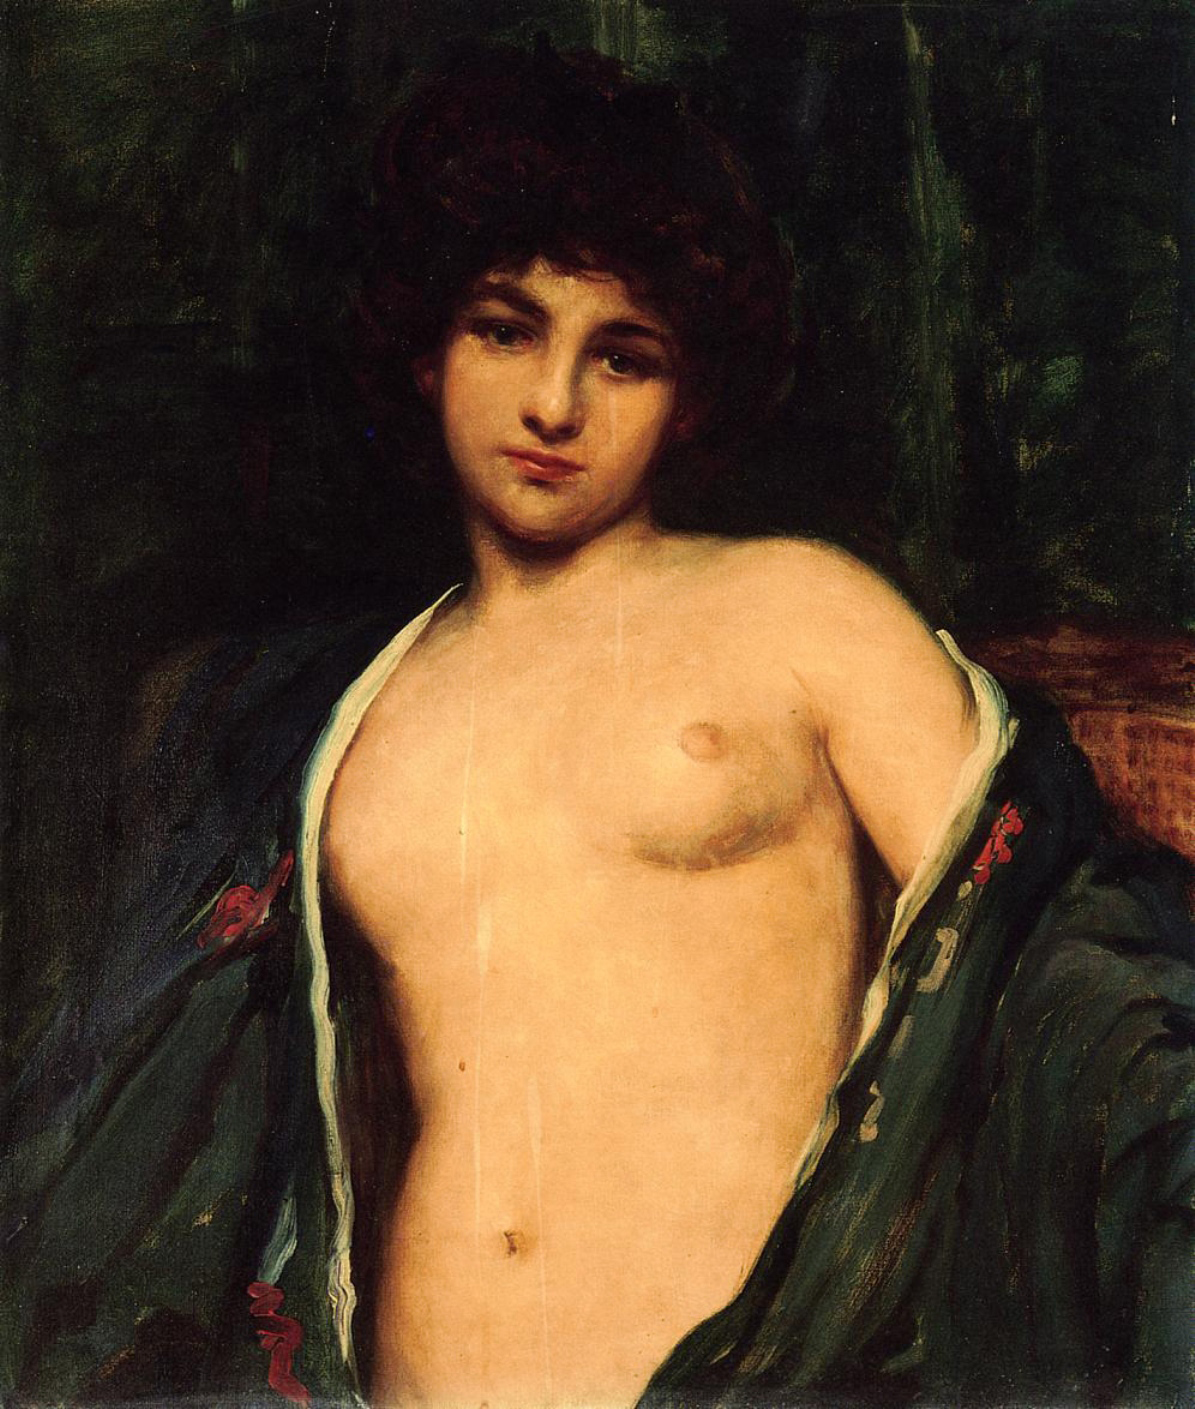 """Portrait of Evelyn Nesbitt"" - James Carroll Beckwith, c. 1901"